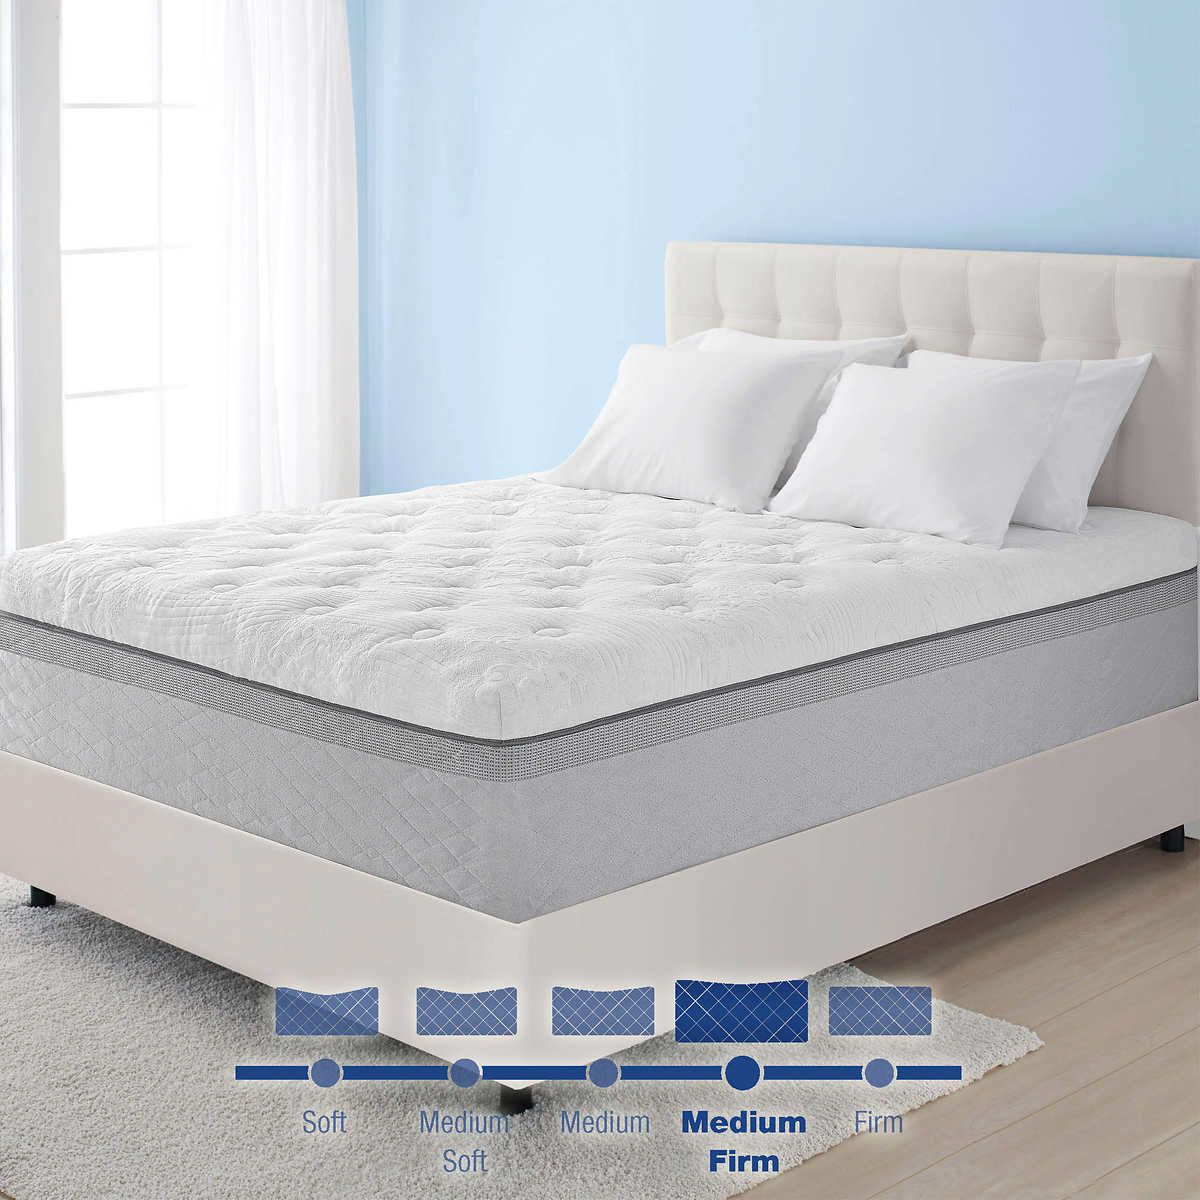 just stearns costco and bedroom for dreams photo king best queen foster mattress